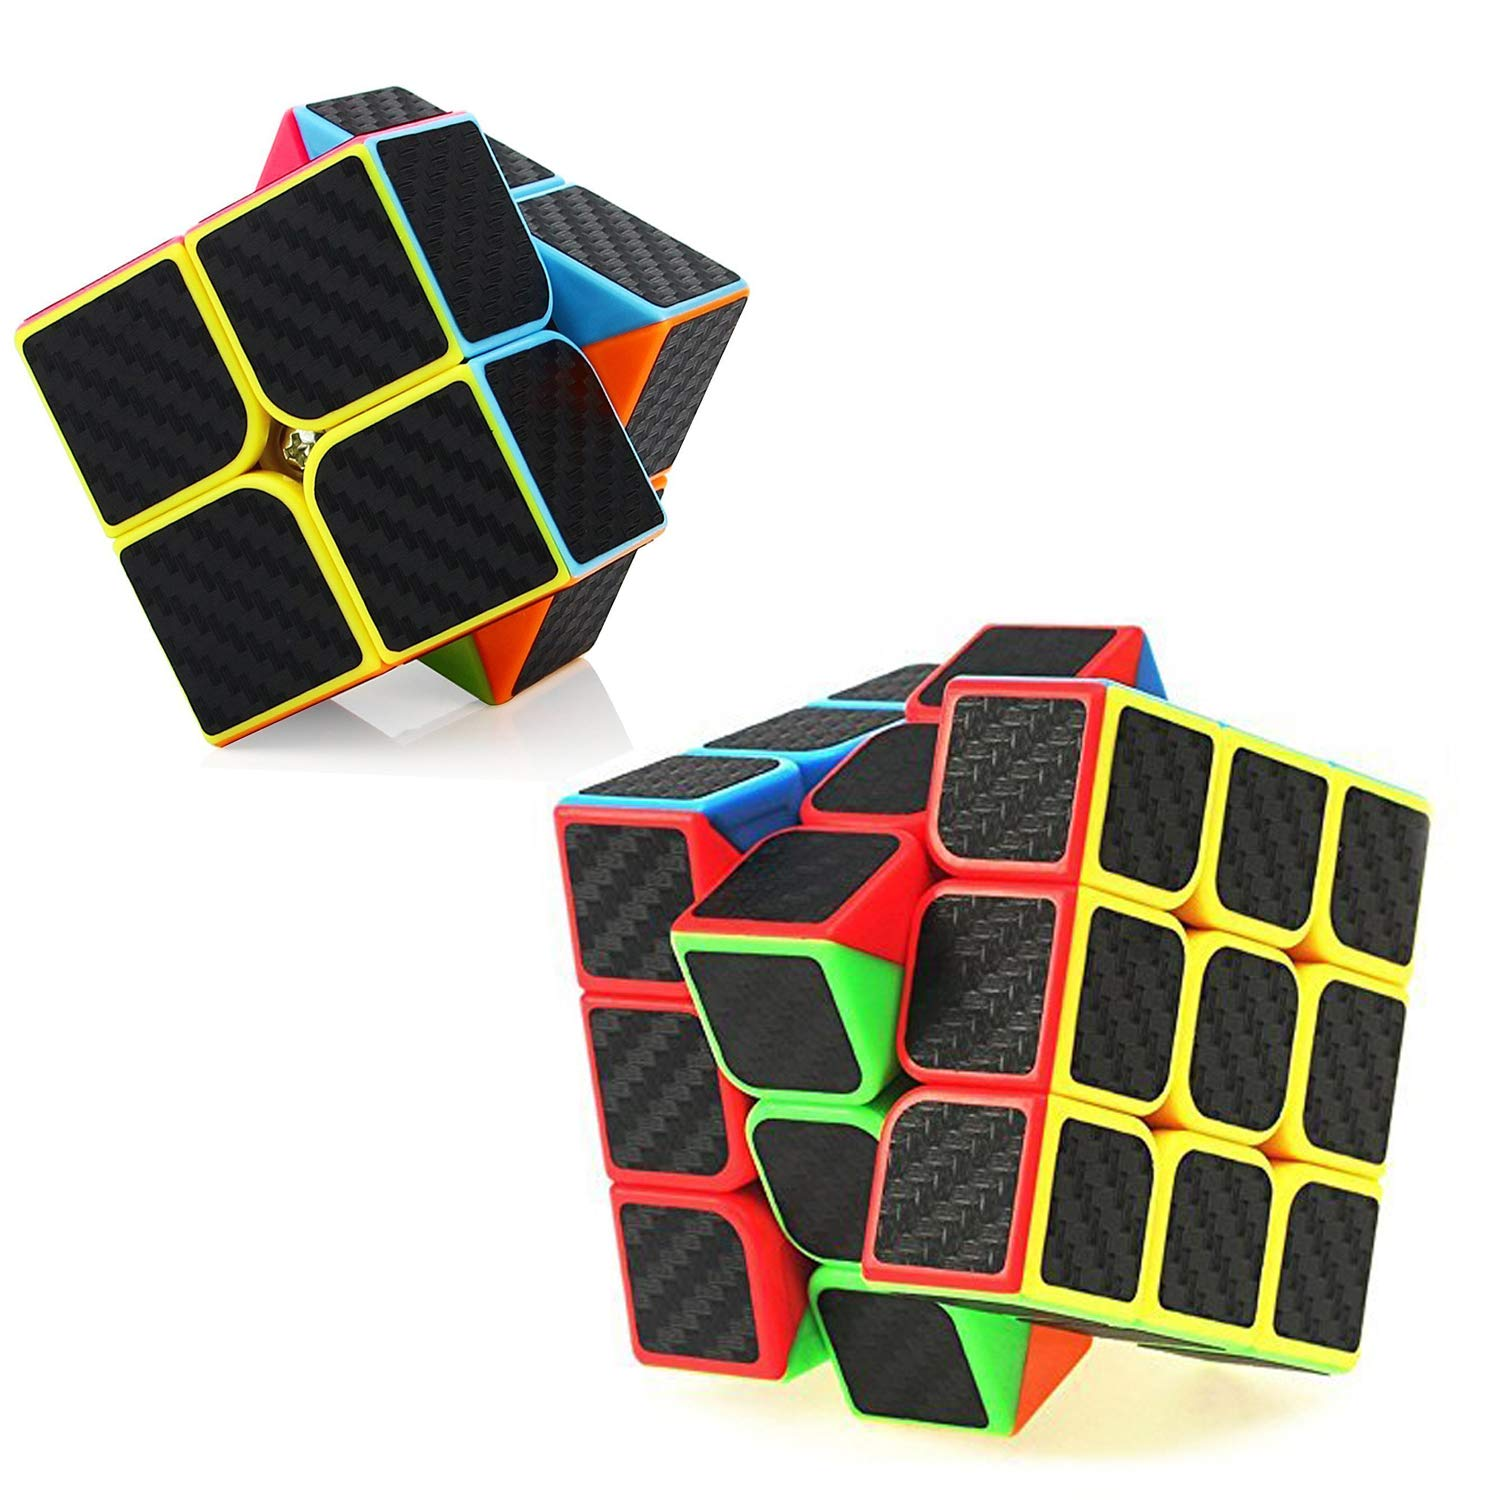 D.F.L Speed Cubes 3D Puzzles Magic Cube 3D Cube Set Rubix Cube Puzzle Cube Carbon Fiber Moyu Cube 2x2 3x3 Smooth Enhanced Version Gift for Kids and Adults by D.F.L (Image #1)